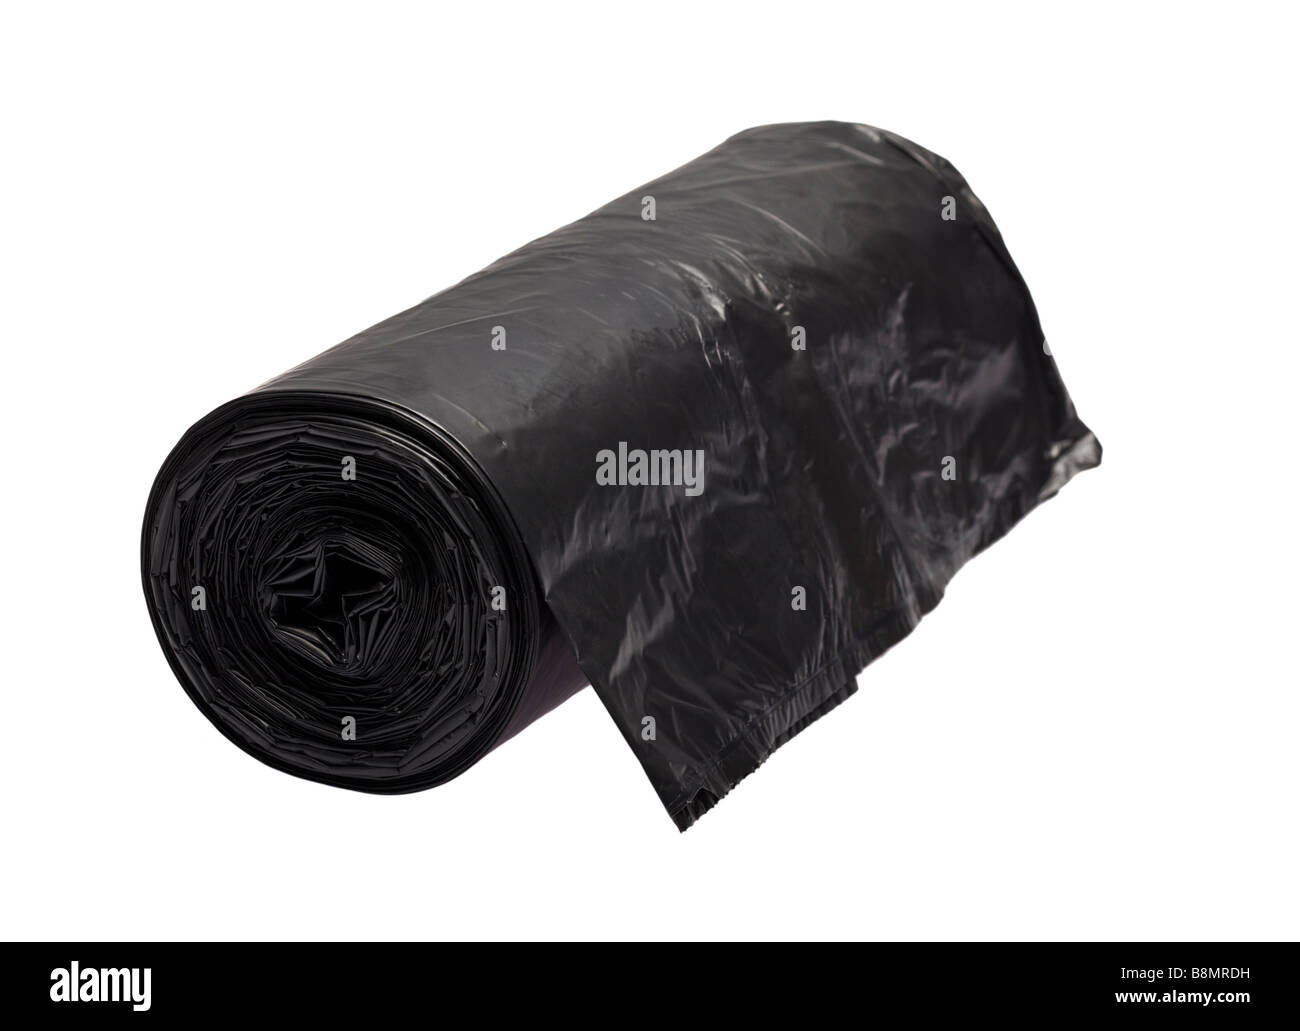 Roll of black bin liners on white cutout - Stock Image